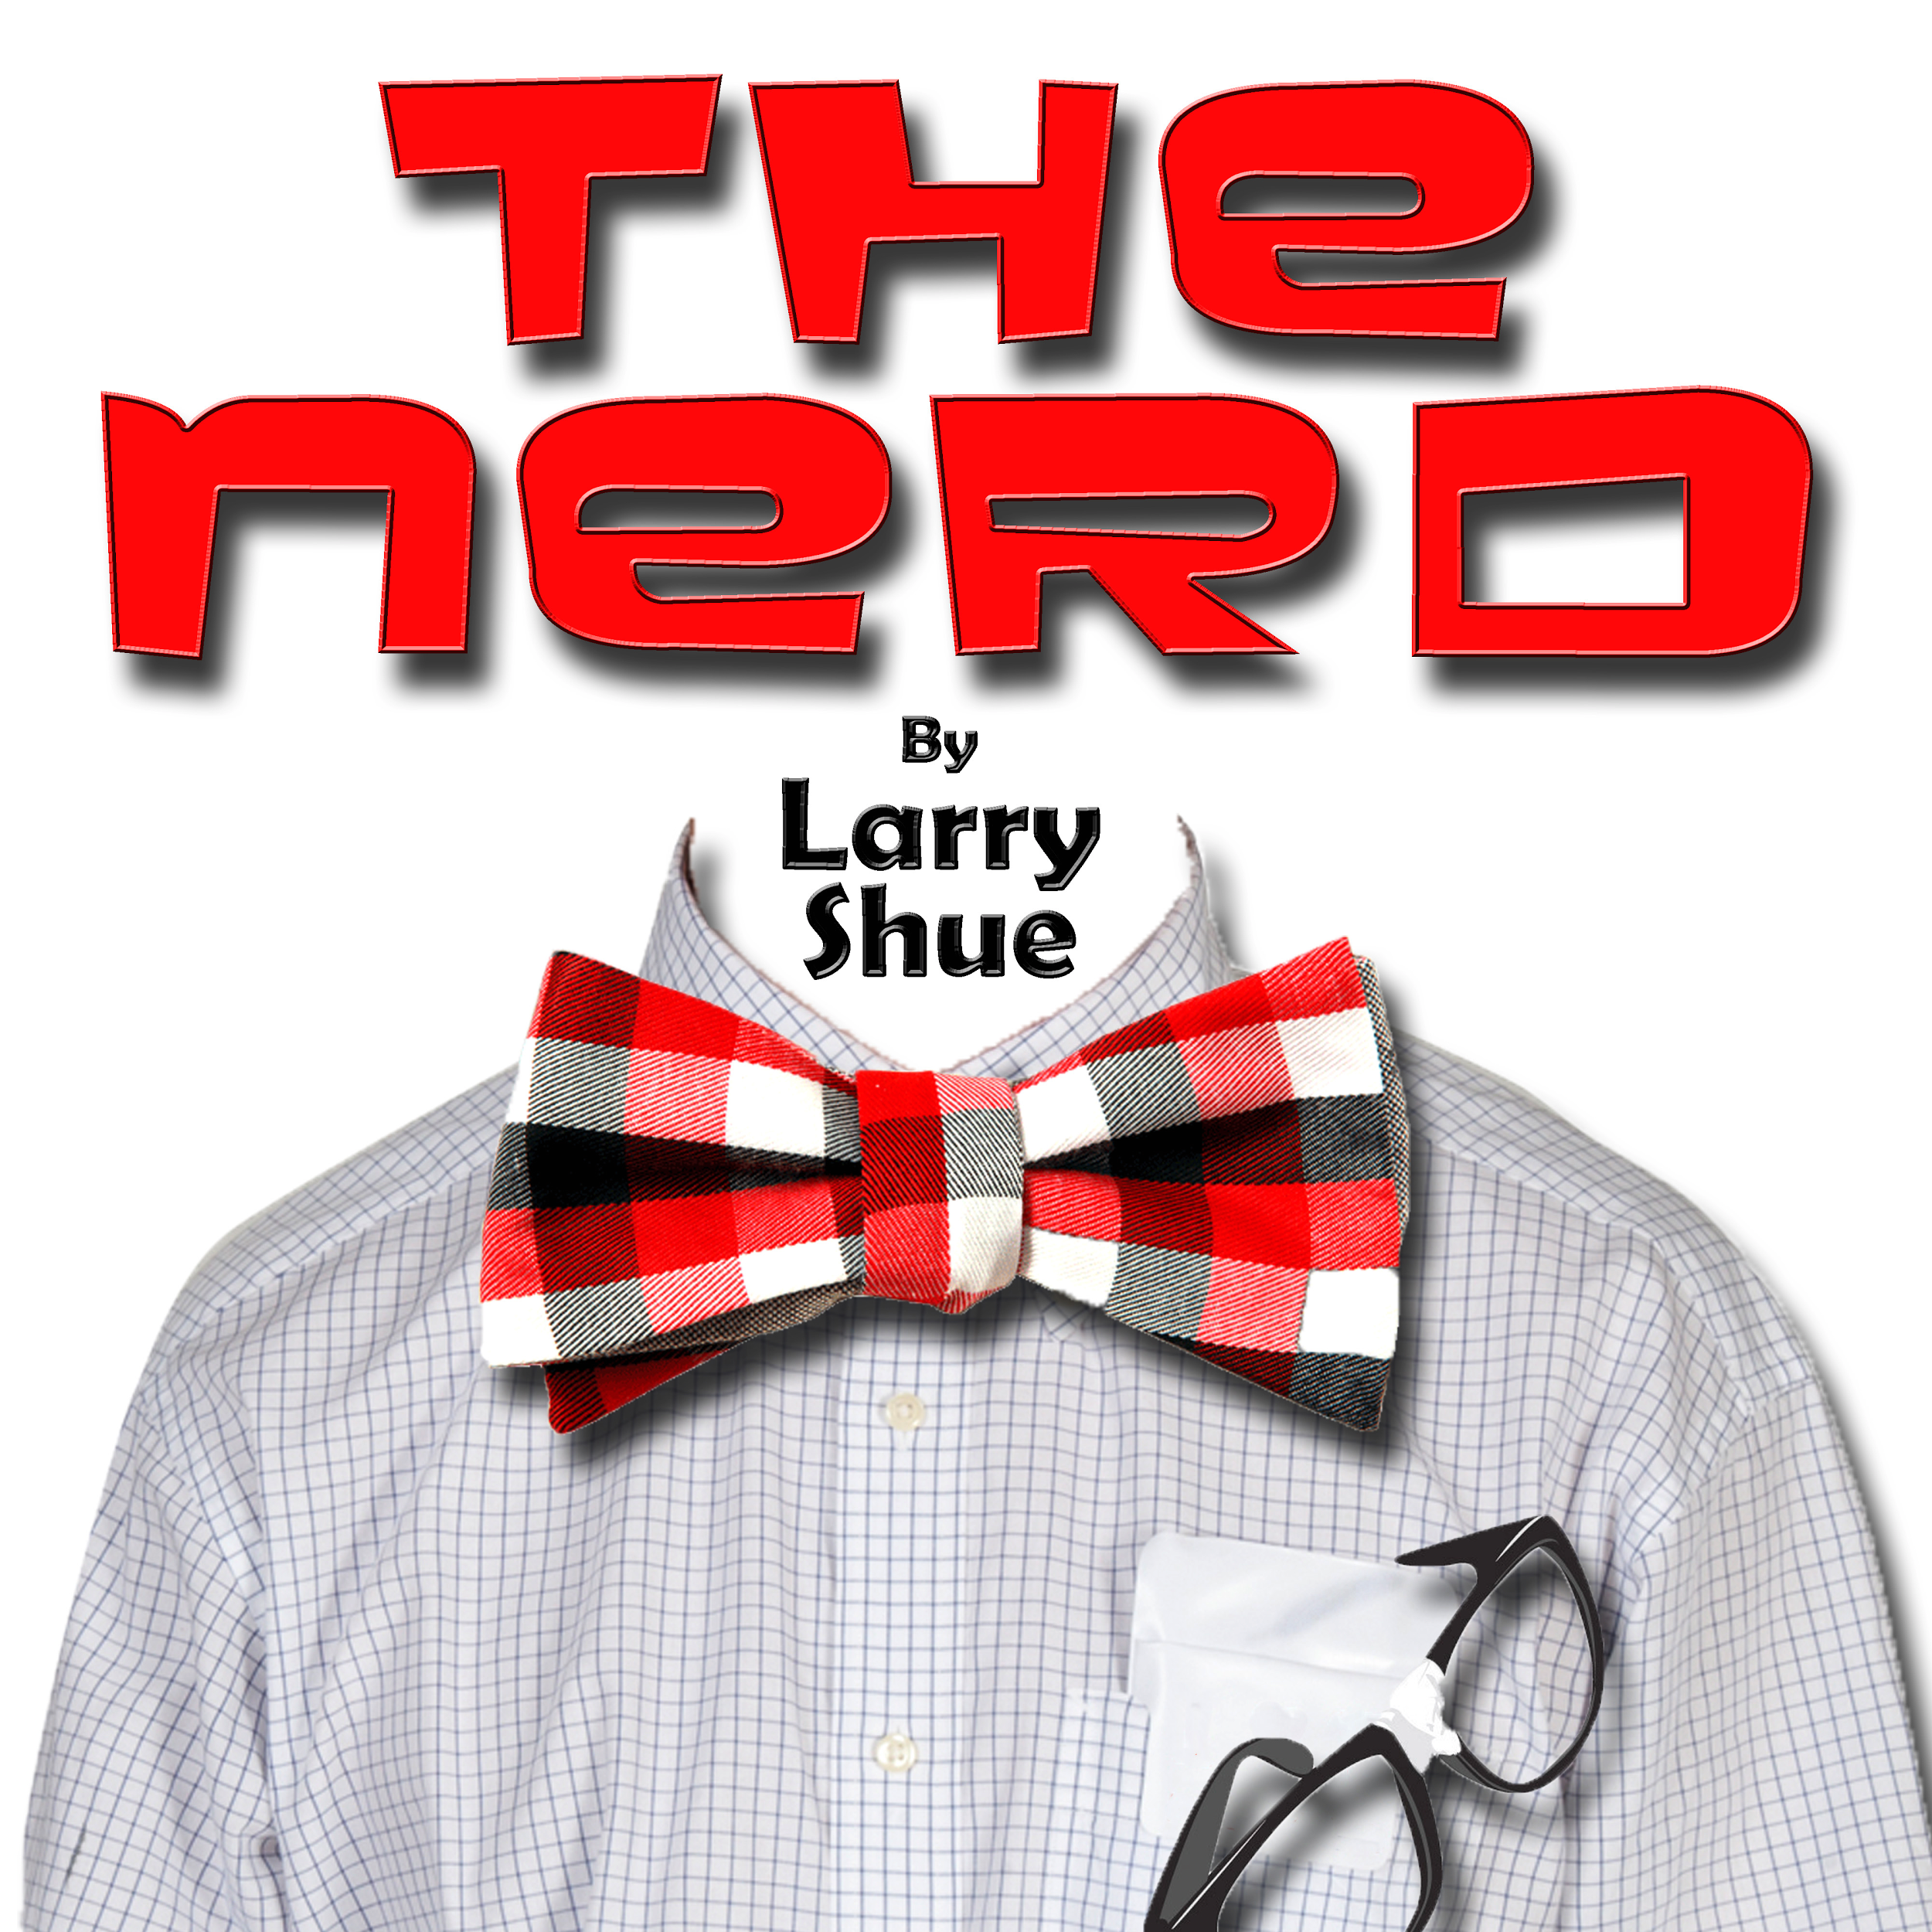 The Nerd shirt with tie